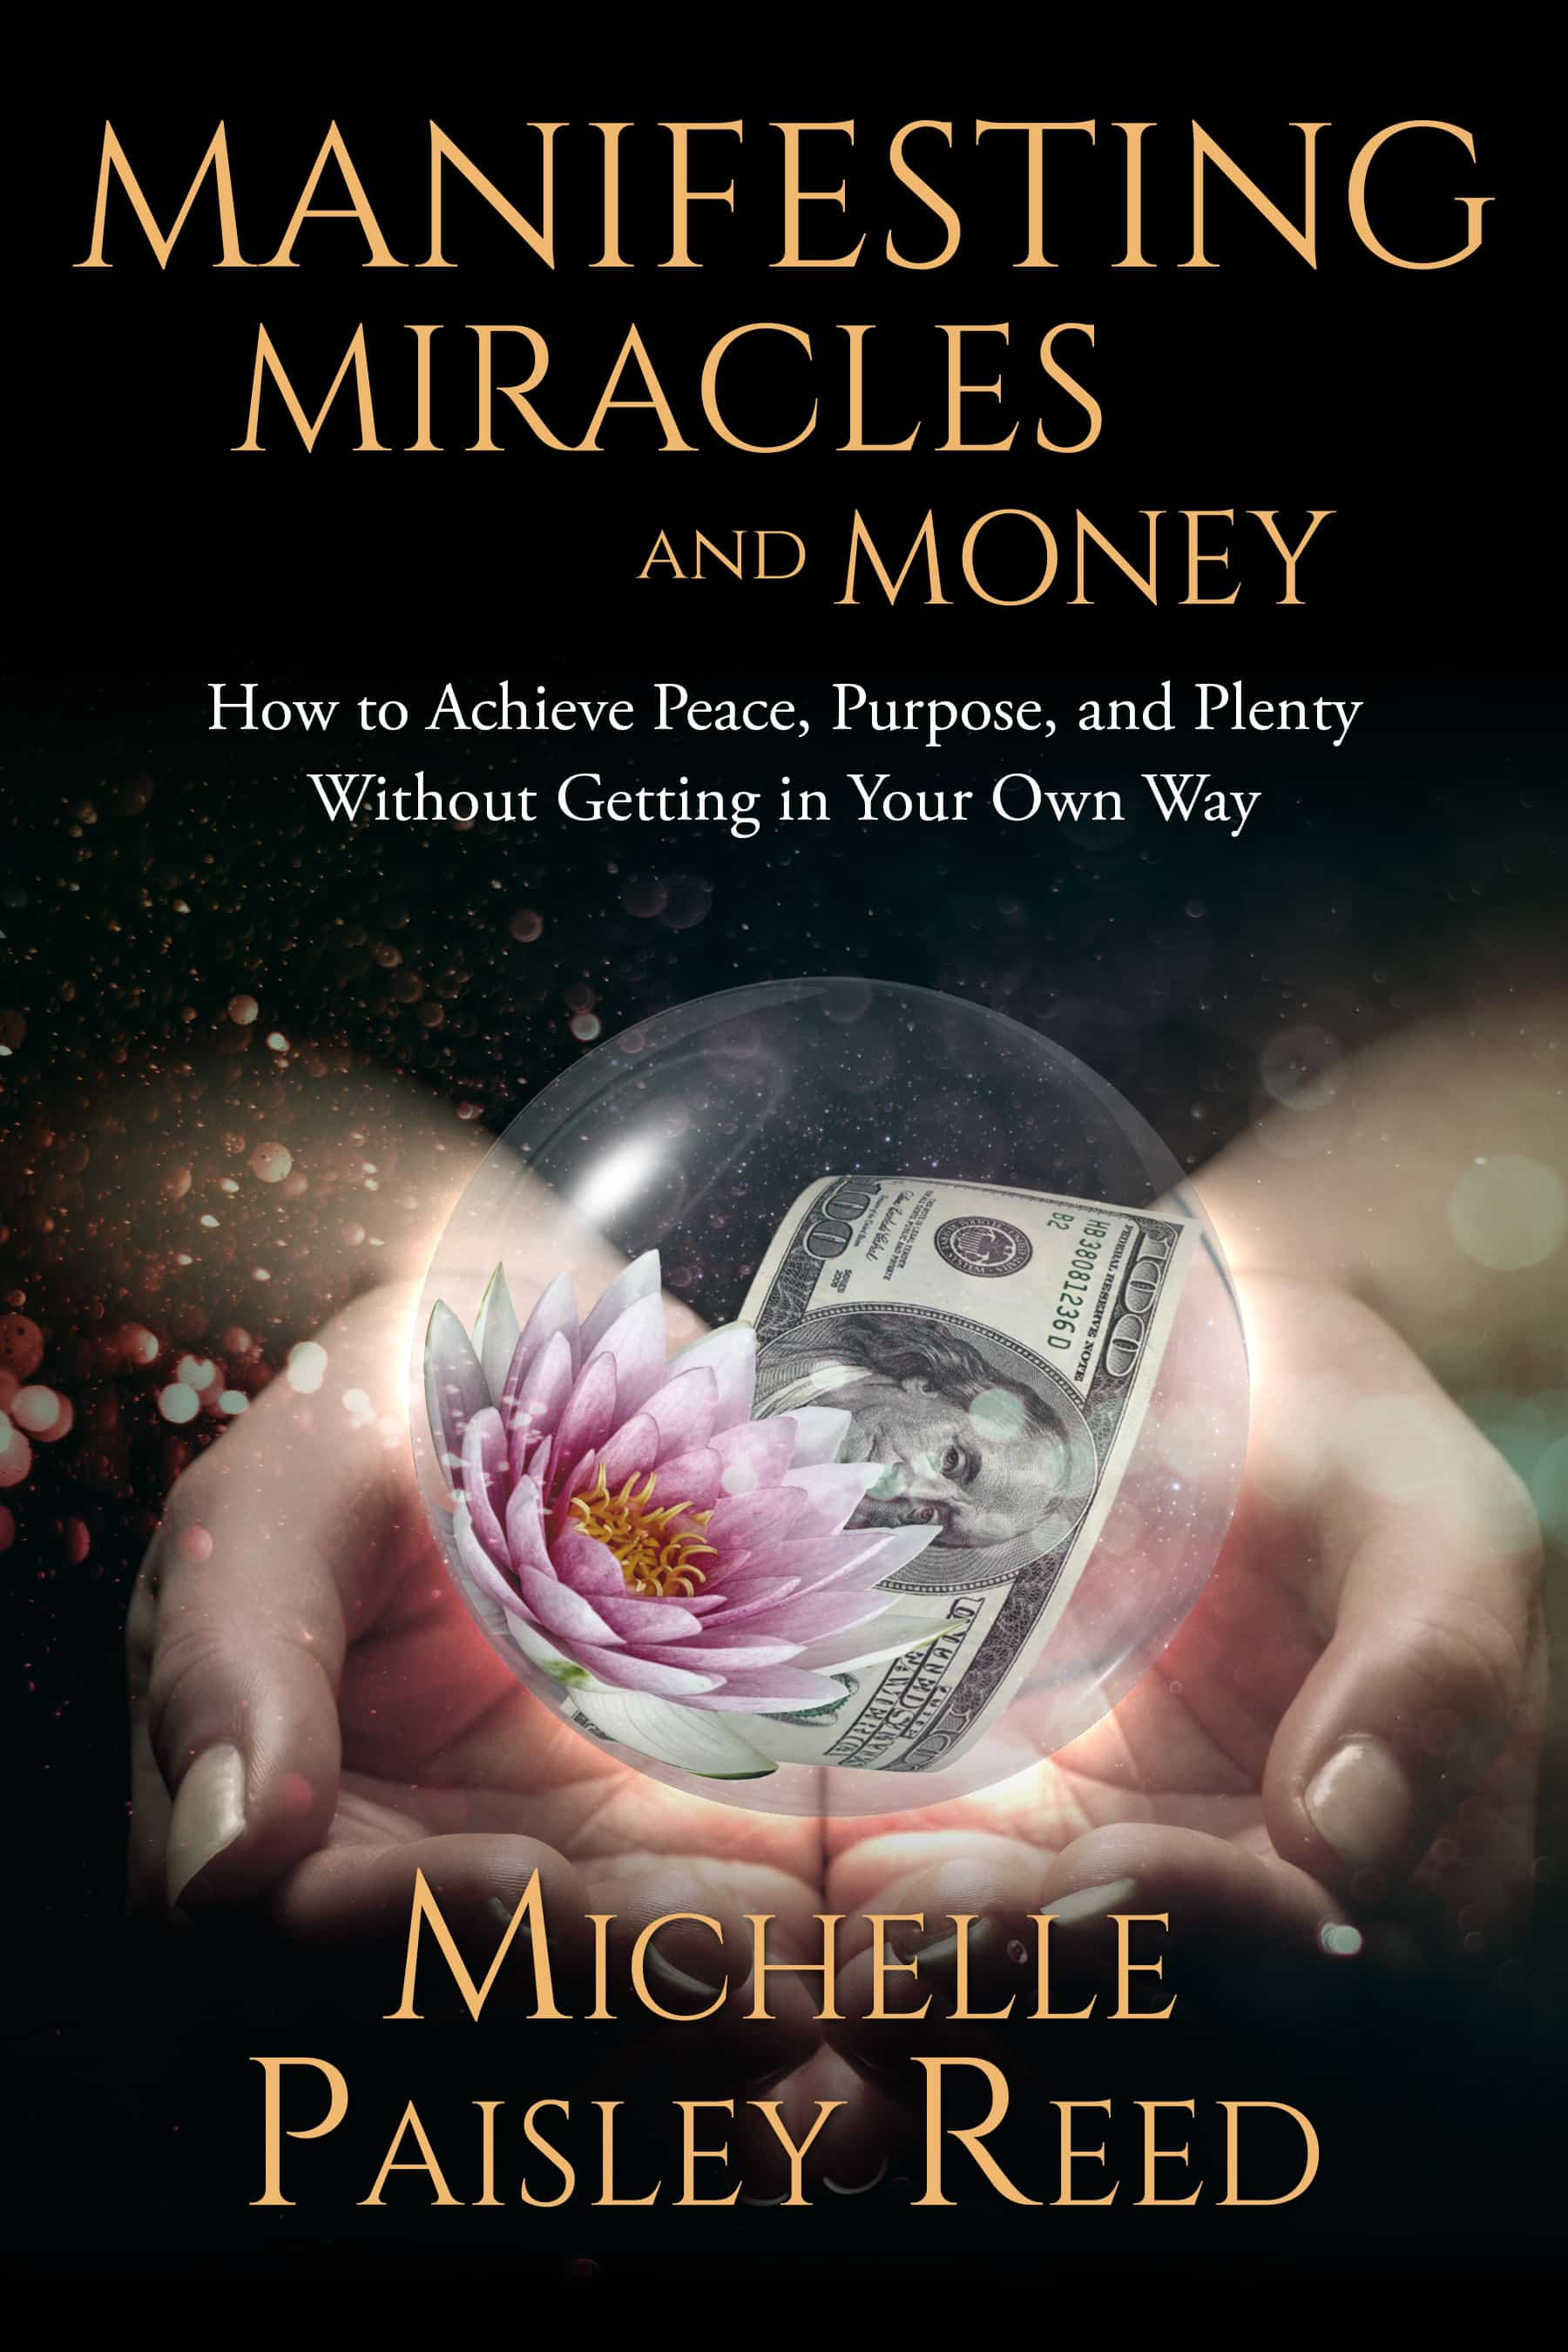 Manifesting Miracles and Money cover design image